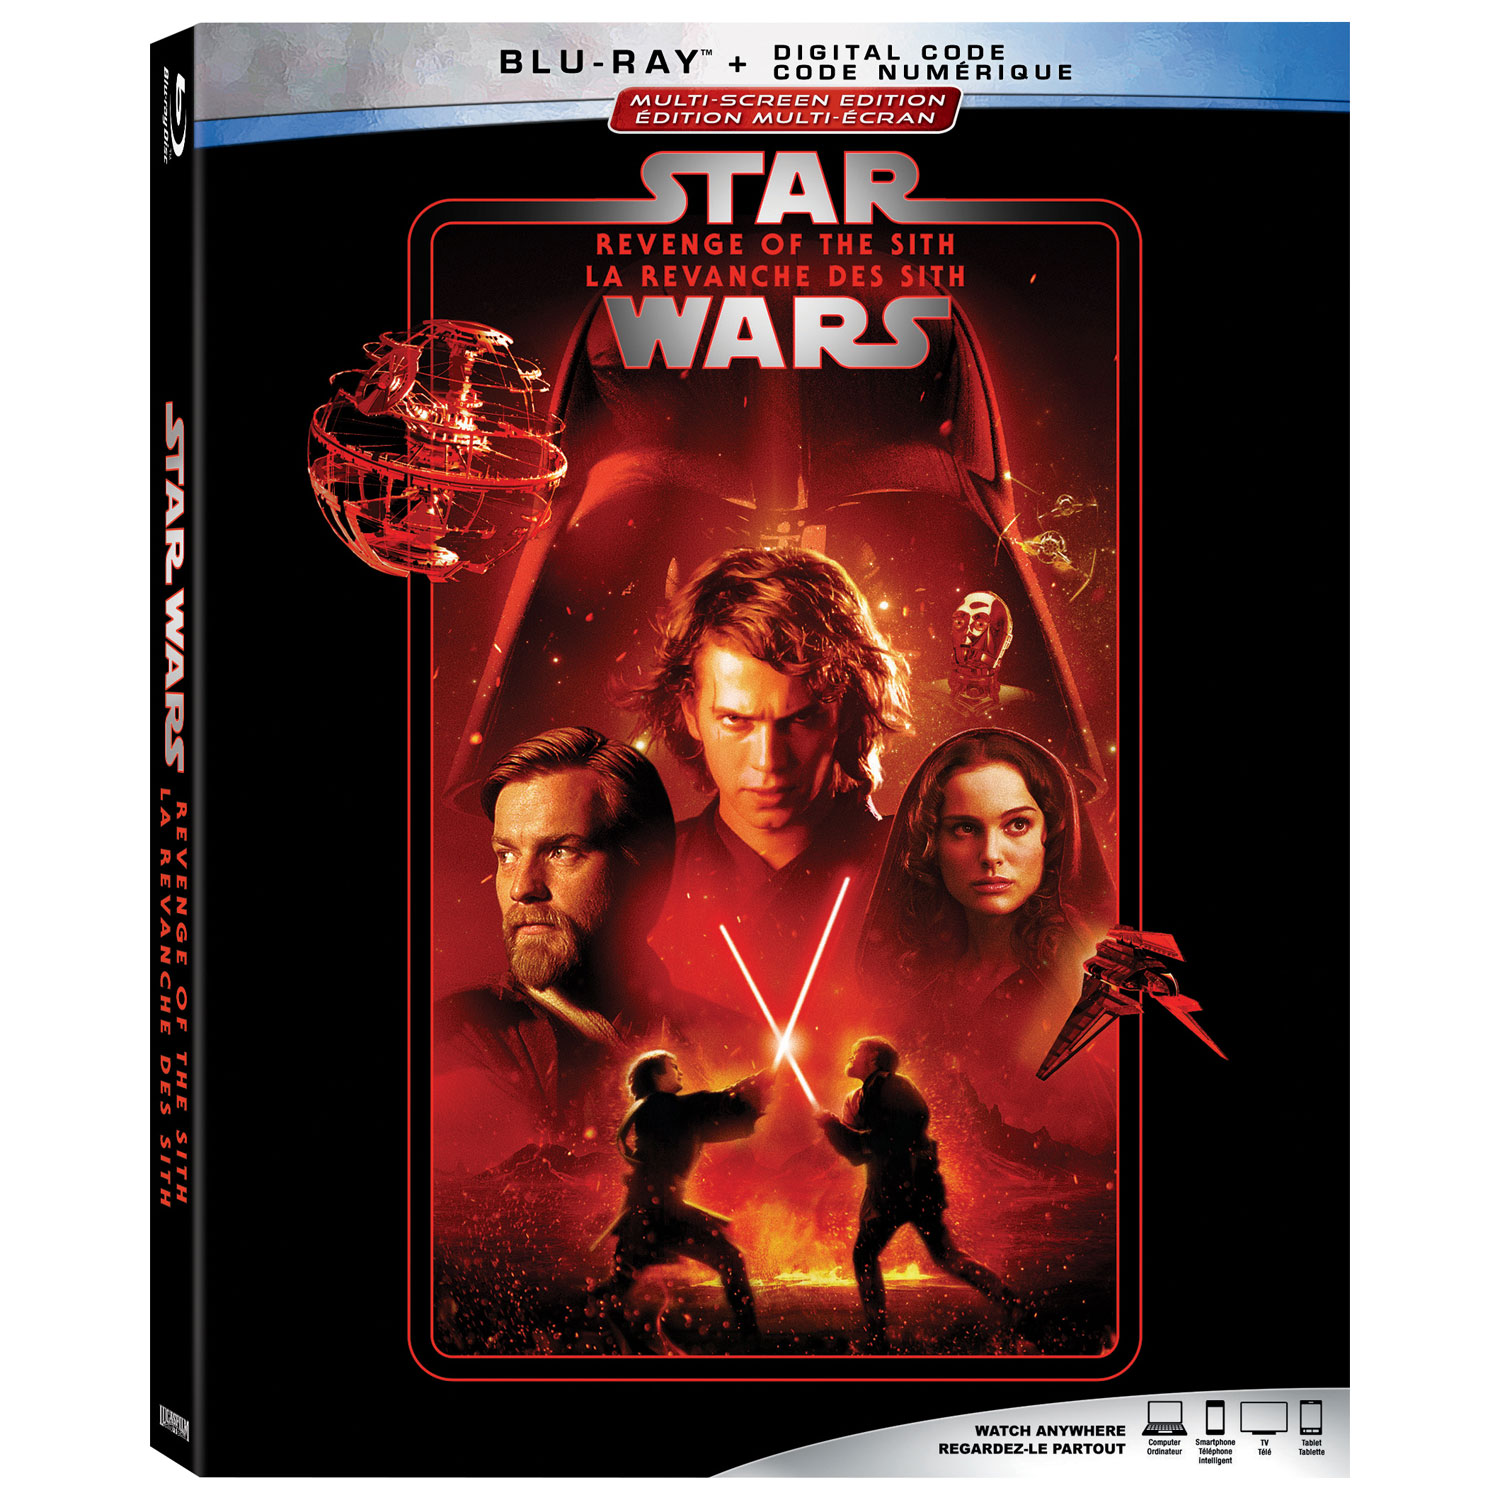 Star Wars Revenge Of The Sith Blu Ray Best Buy Canada